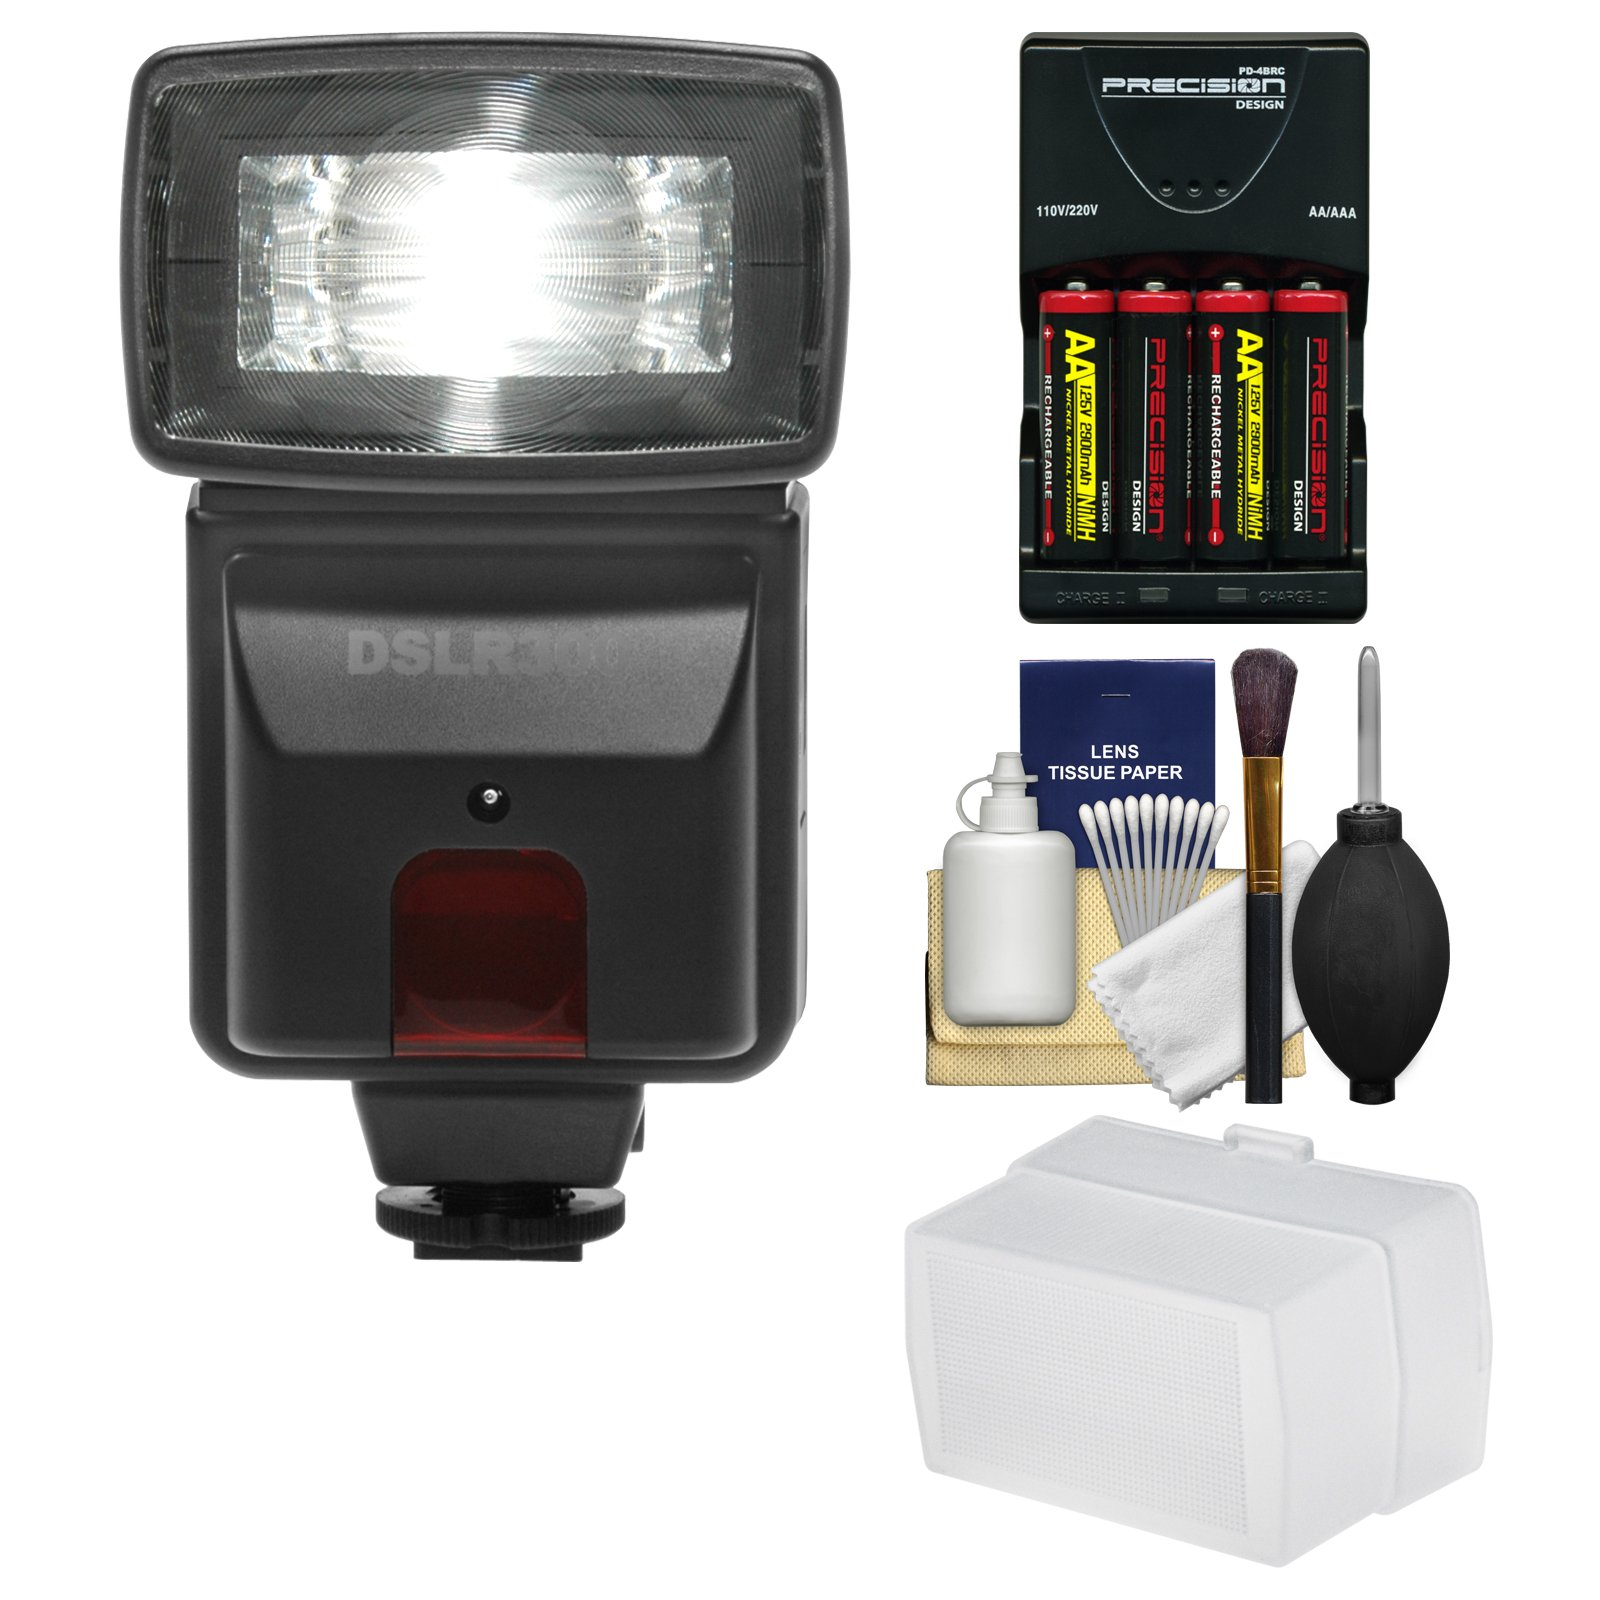 Precision Design DSLR300 High Power Auto Flash with Diffuser + Batteries & Charger + Accessory Kit for Nikon D3200, D3300, D5300, D5500, D7100, D7200 DSLR Cameras by Precision Design